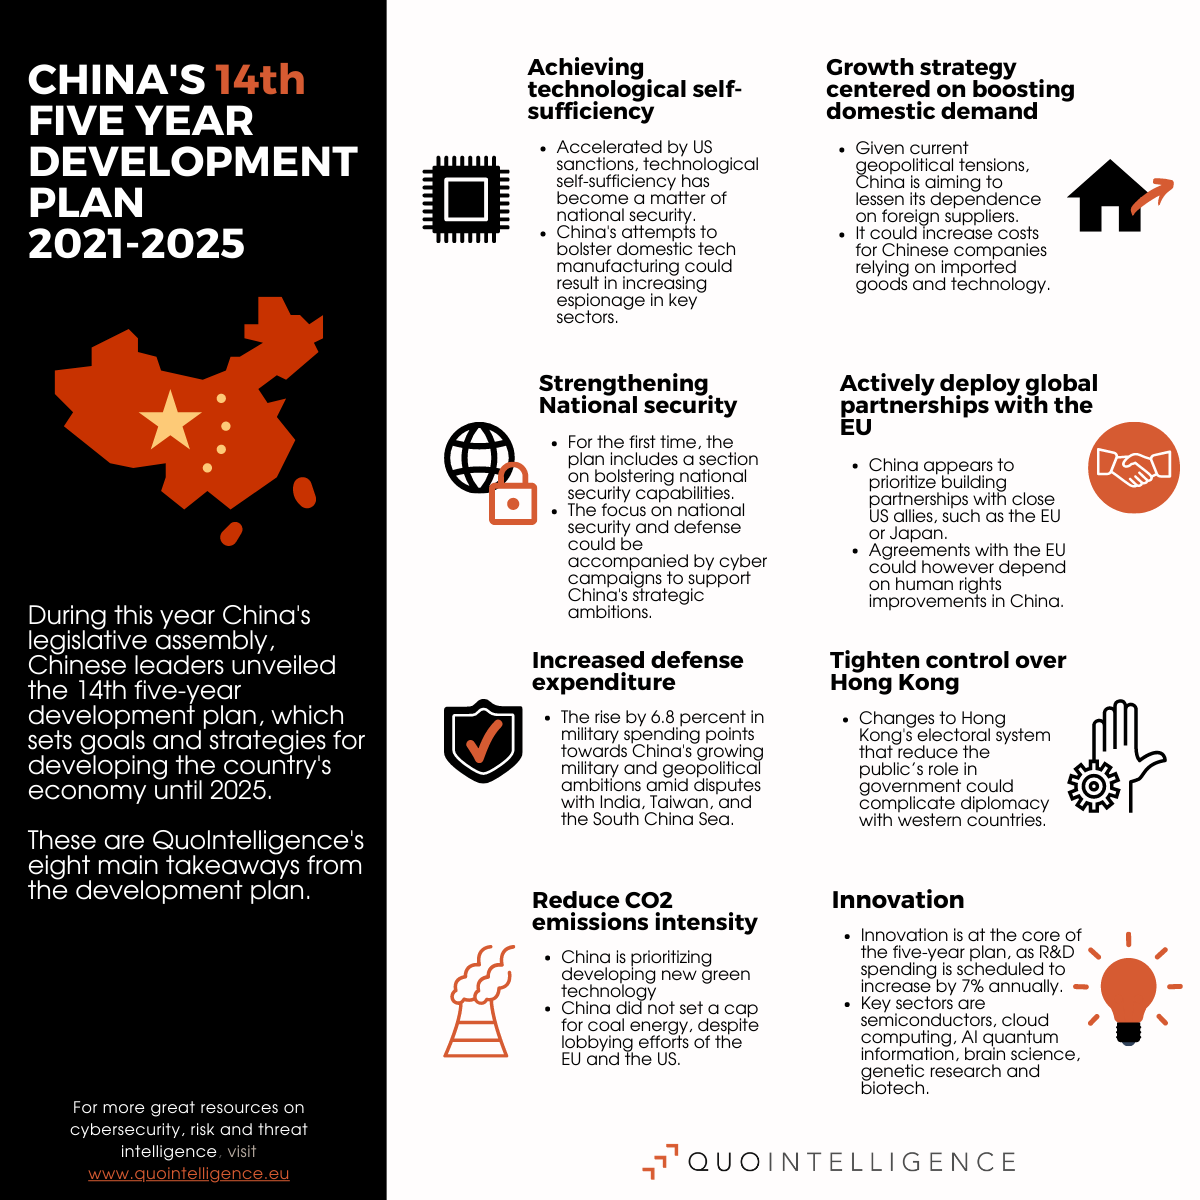 China's Five-Year Plan in an Infographic